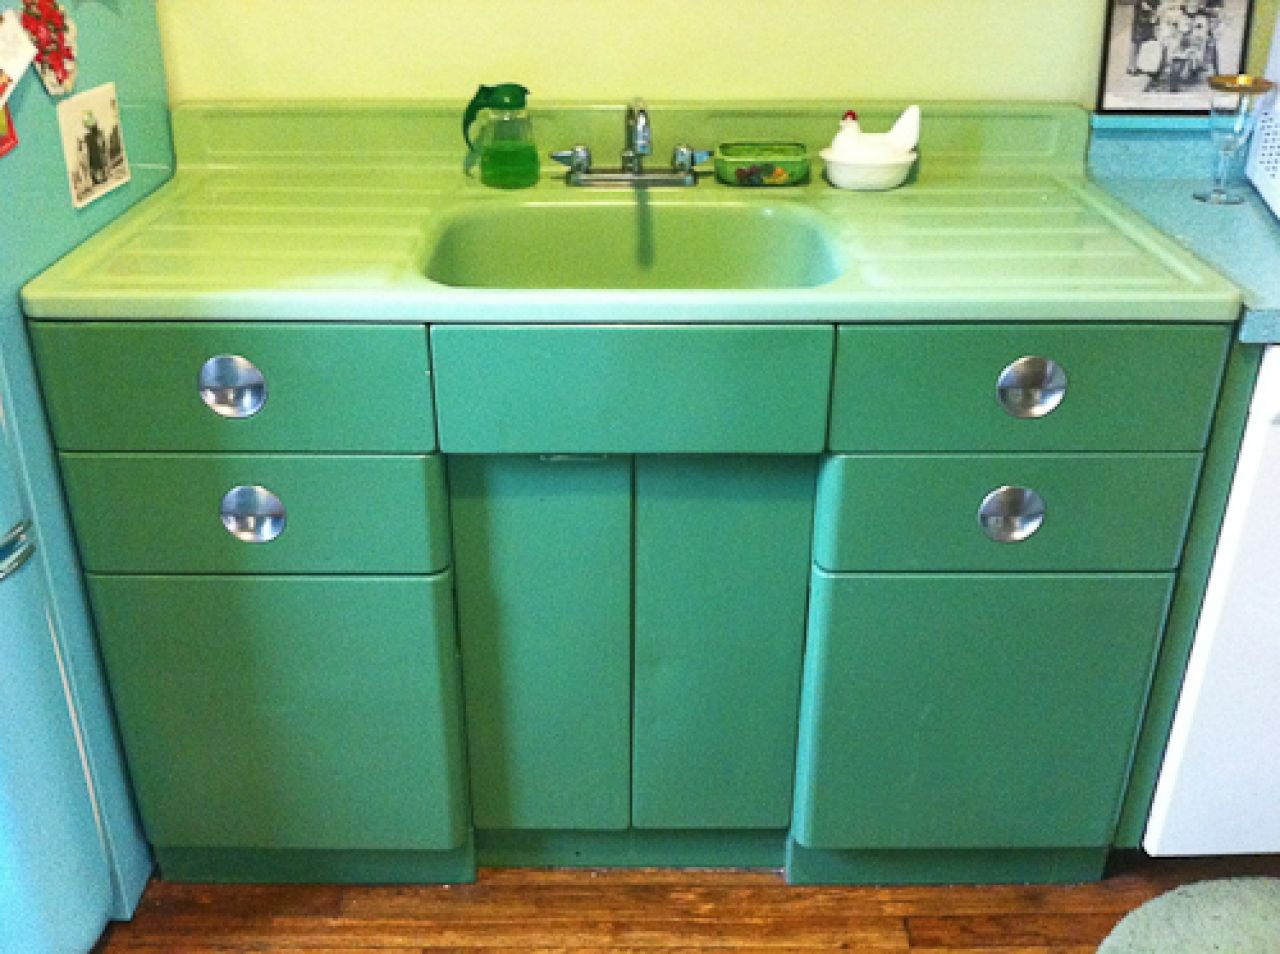 Vintage Metal Kitchen Cabinet Vintage Jadeite Porcelain Drainboard Sink And Metal Sink Cabinet Kitschy Kitchen Vintage Kitchen Metal Kitchen Cabinets